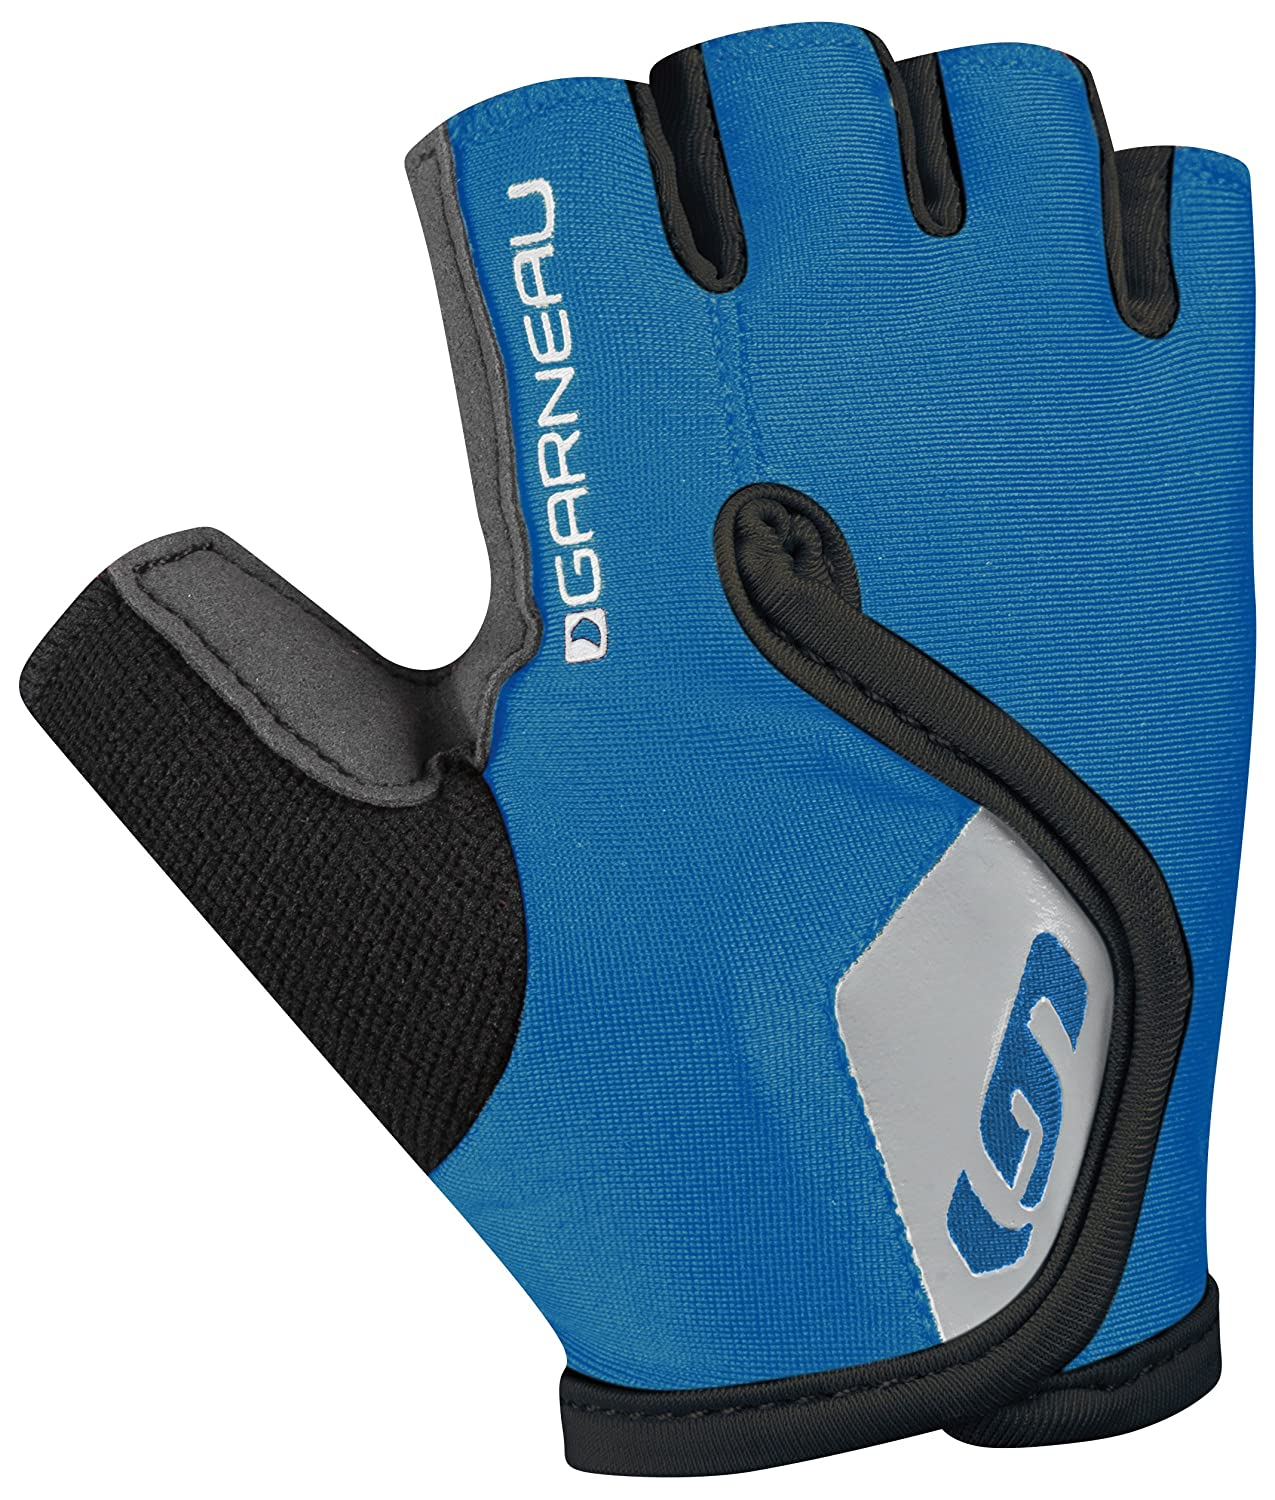 Louis Garneau Rookie Ride Cycling Gloves